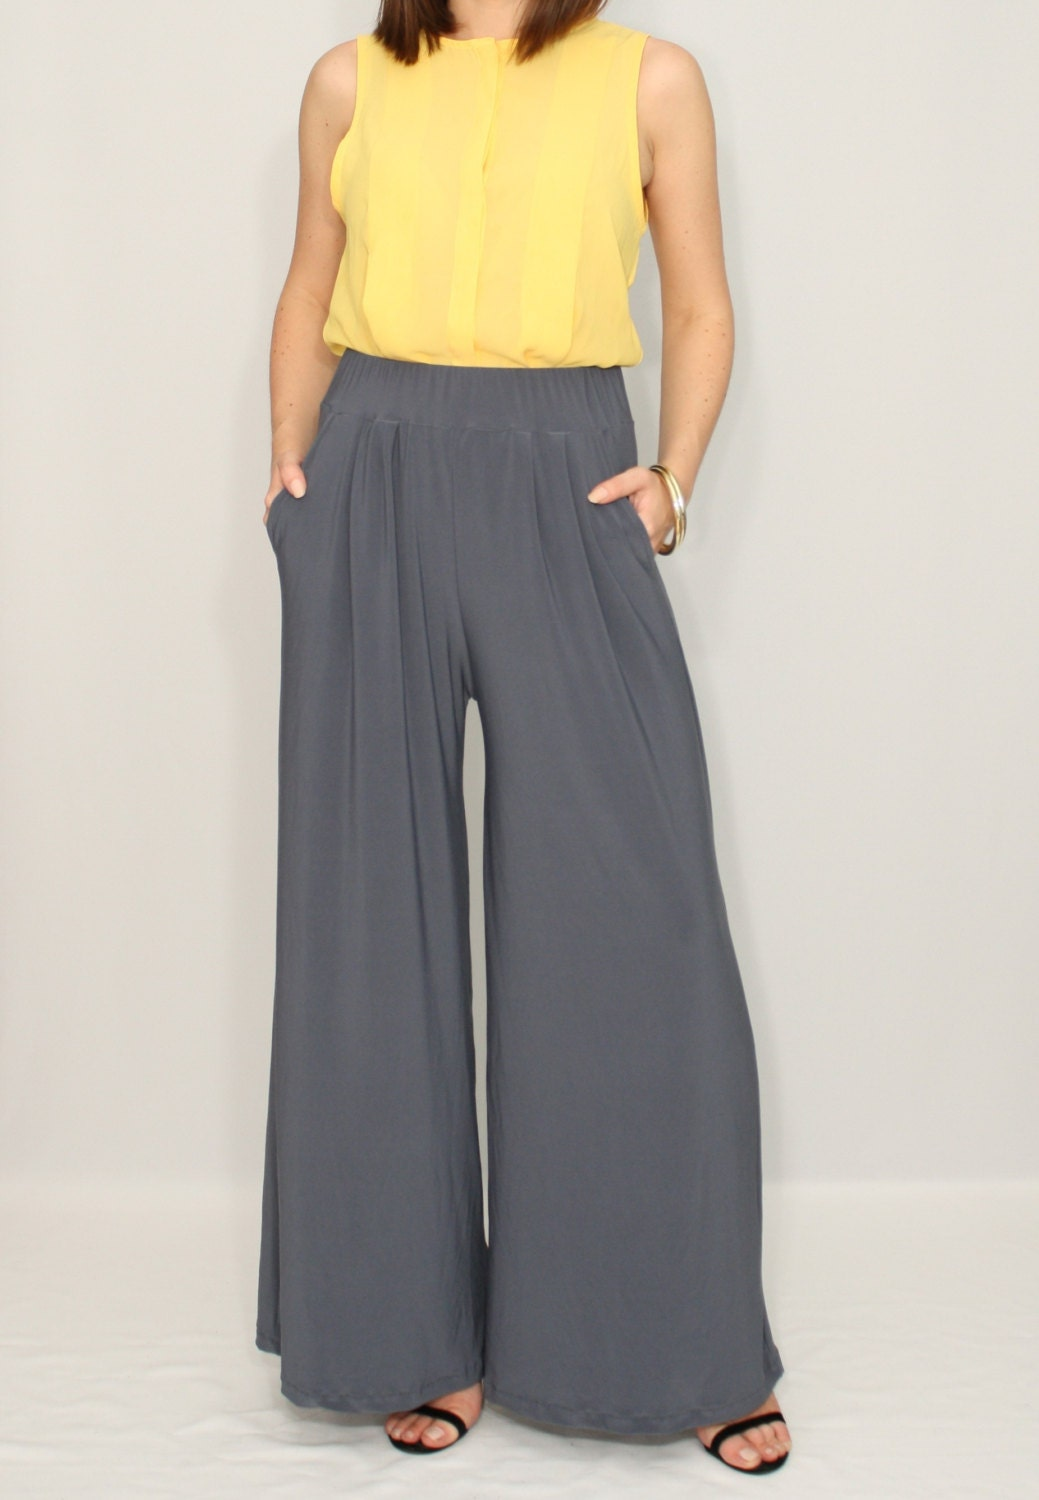 With a varied array of culottes, joggers and leggings, our women's trousers edit has it all. This carefully curated collection has everything from directional contemporary tailoring and wide leg trousers to festival-ready nostalgic vintage-inspired styles.